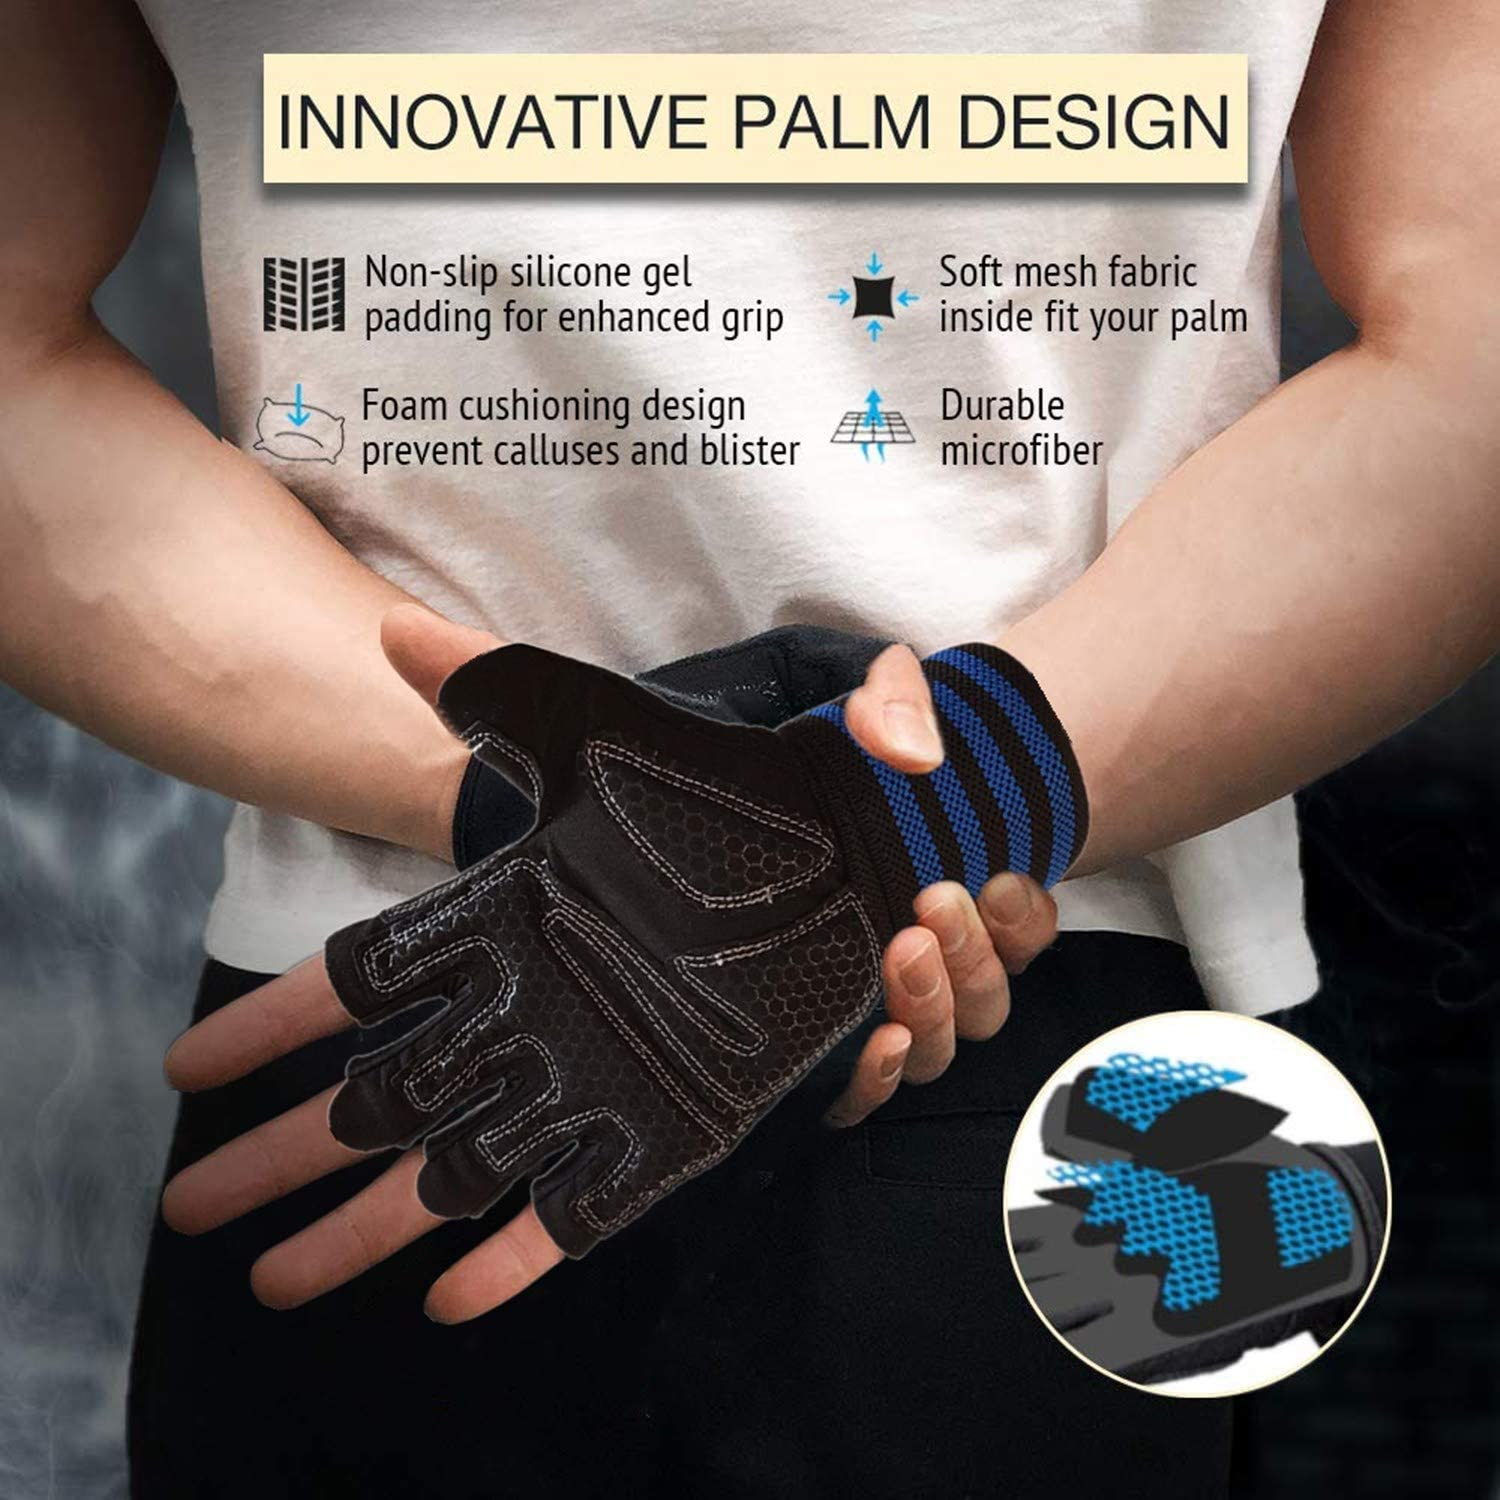 Anti-Slip Grip Half Finger Glove for Exercise Weightlifting Hanging Rowing Biking Training Weight Lifting Gloves Work Out Gym Men Women with Wrist Wraps Support